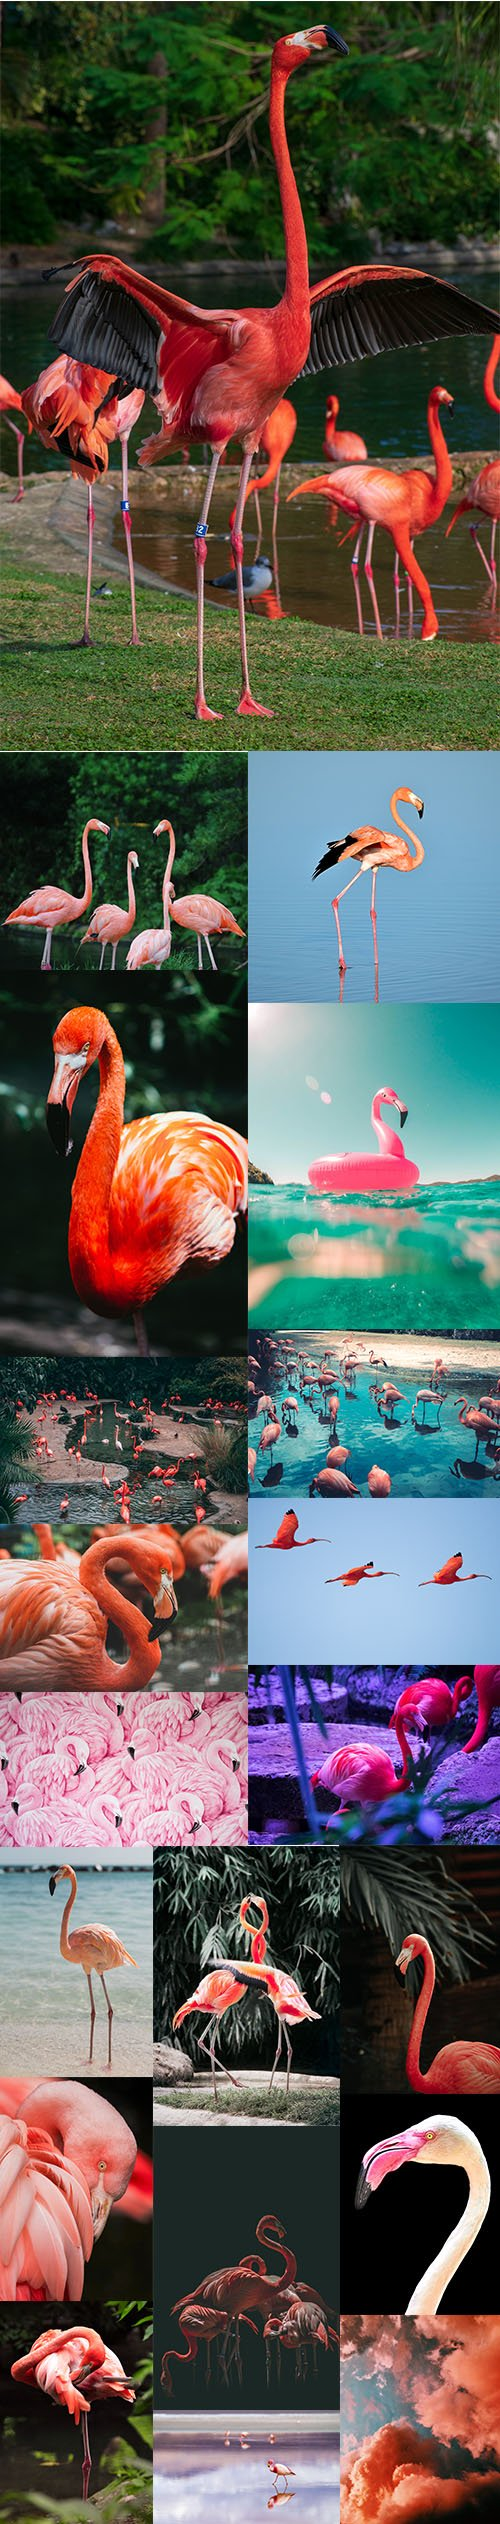 Flamingo - Premium UHQ Stock Photo Bundle